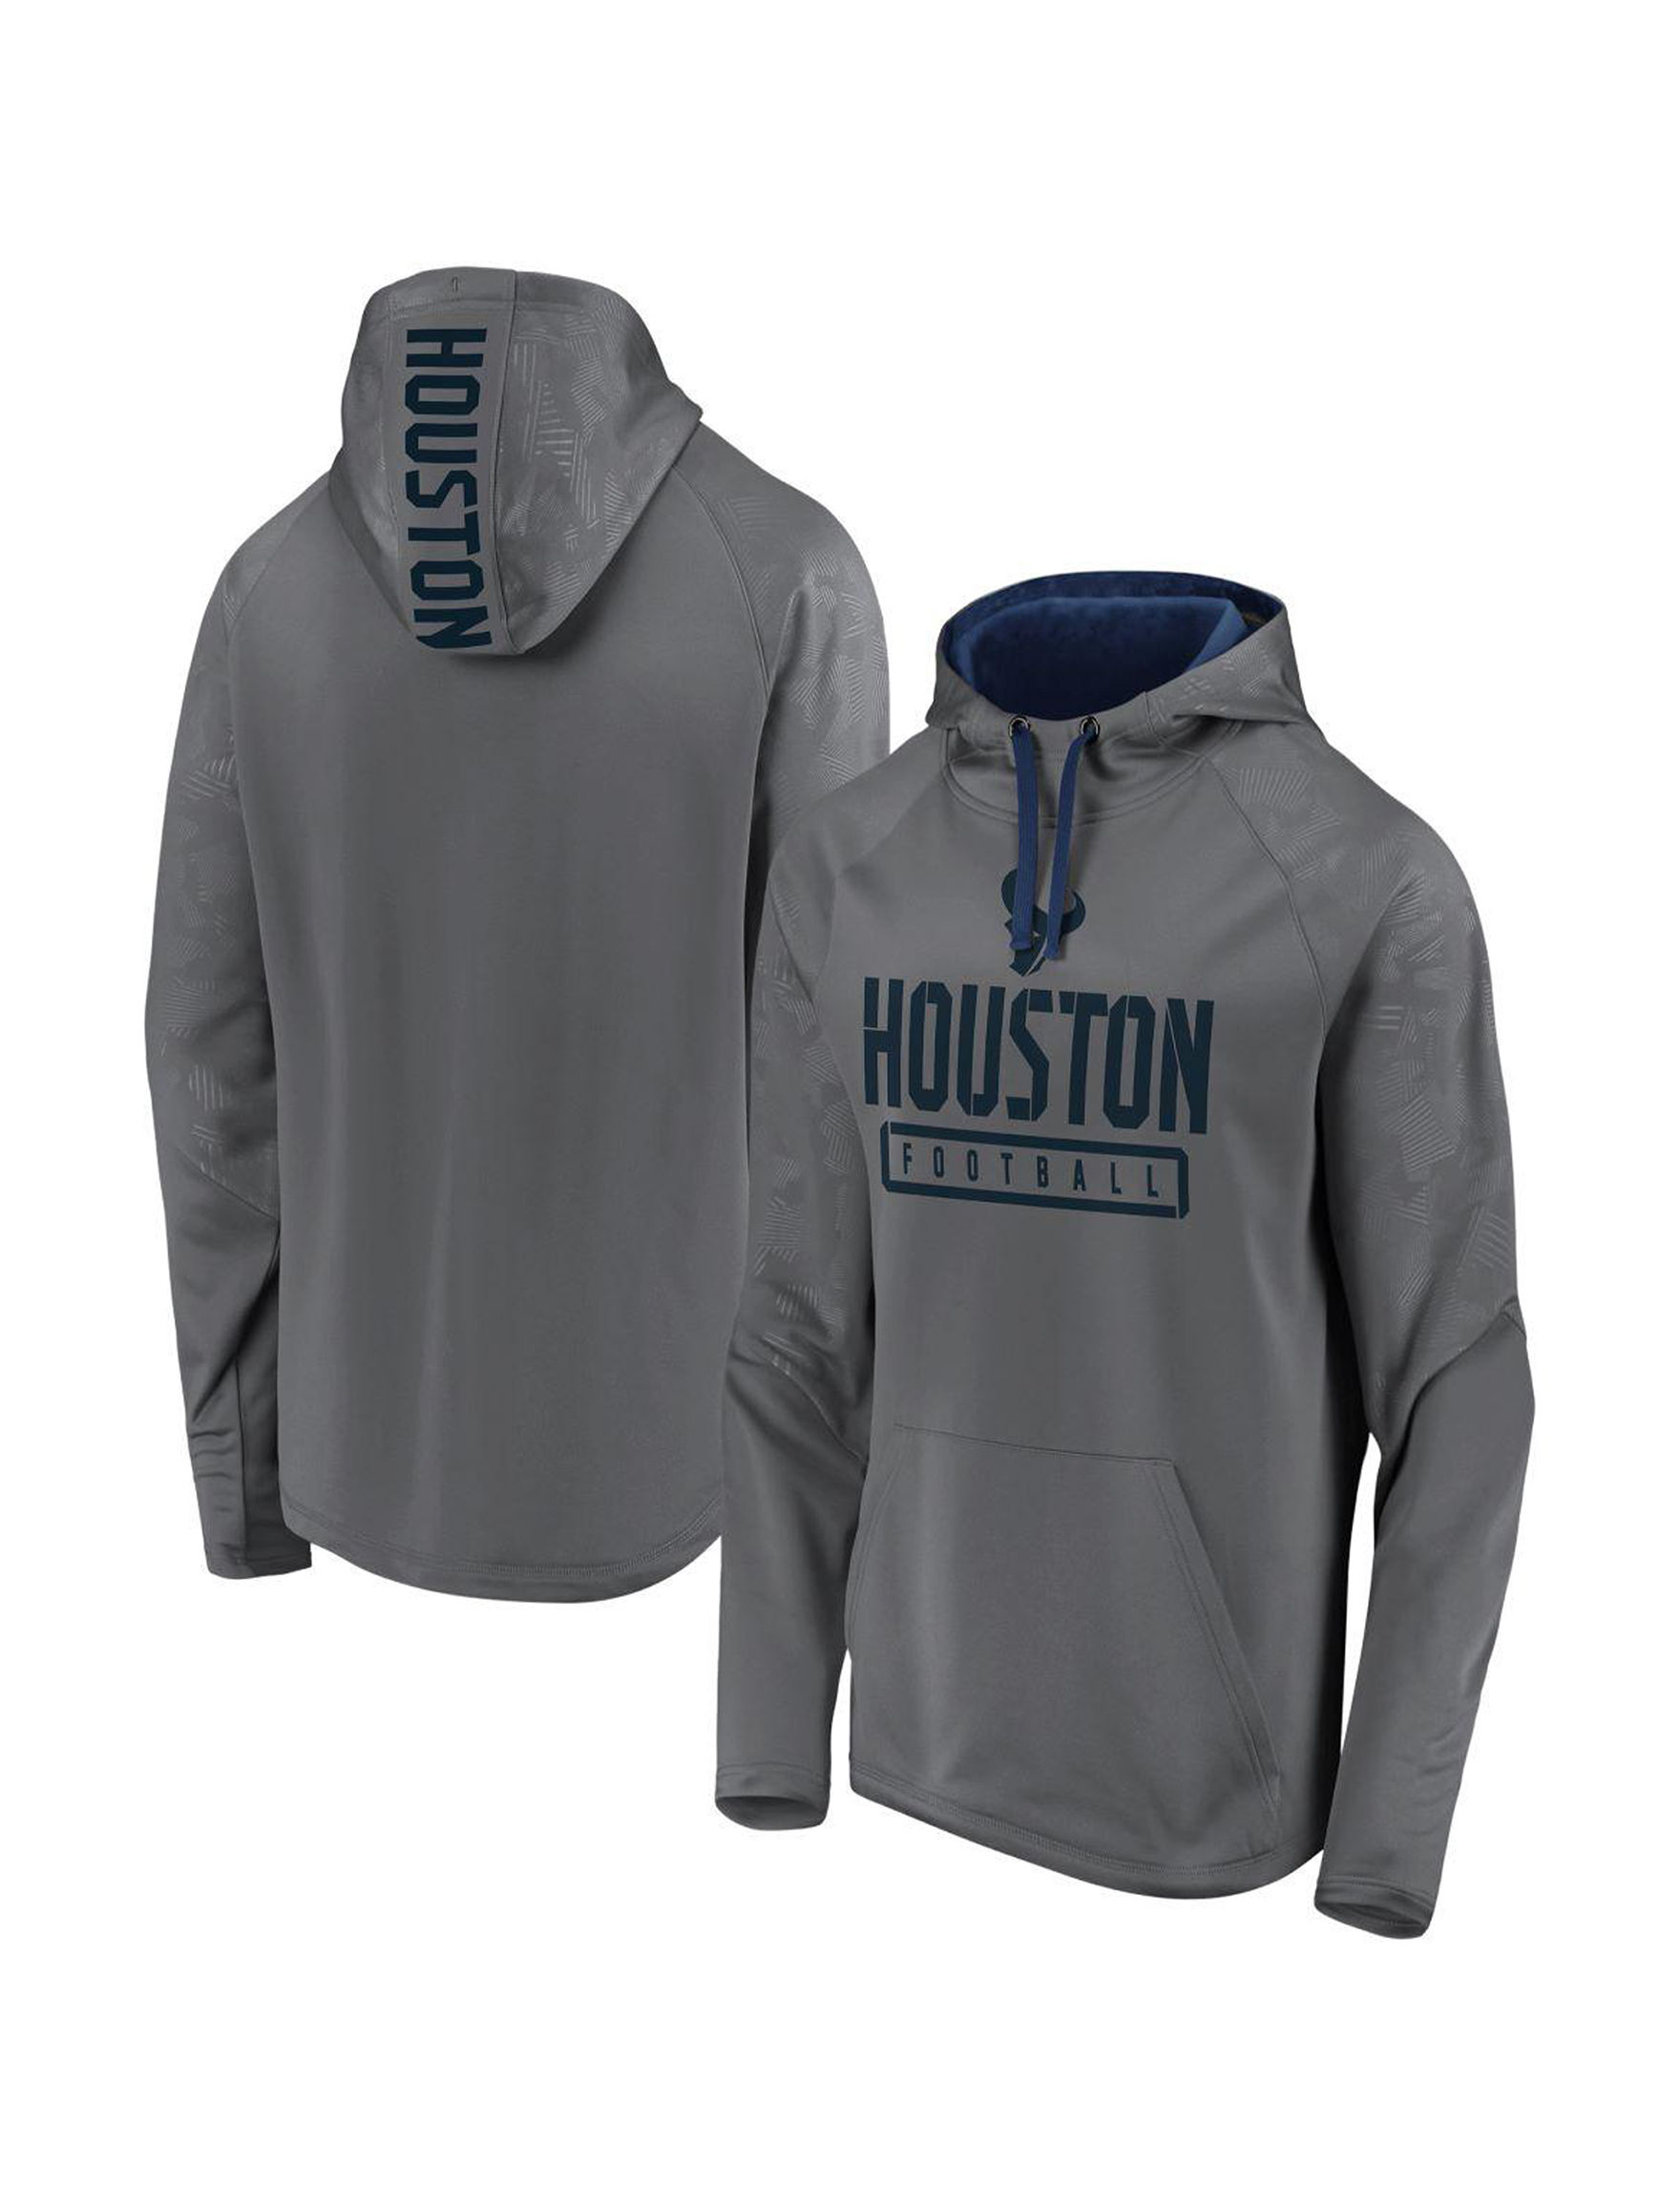 NFL Charcoal Pull-overs